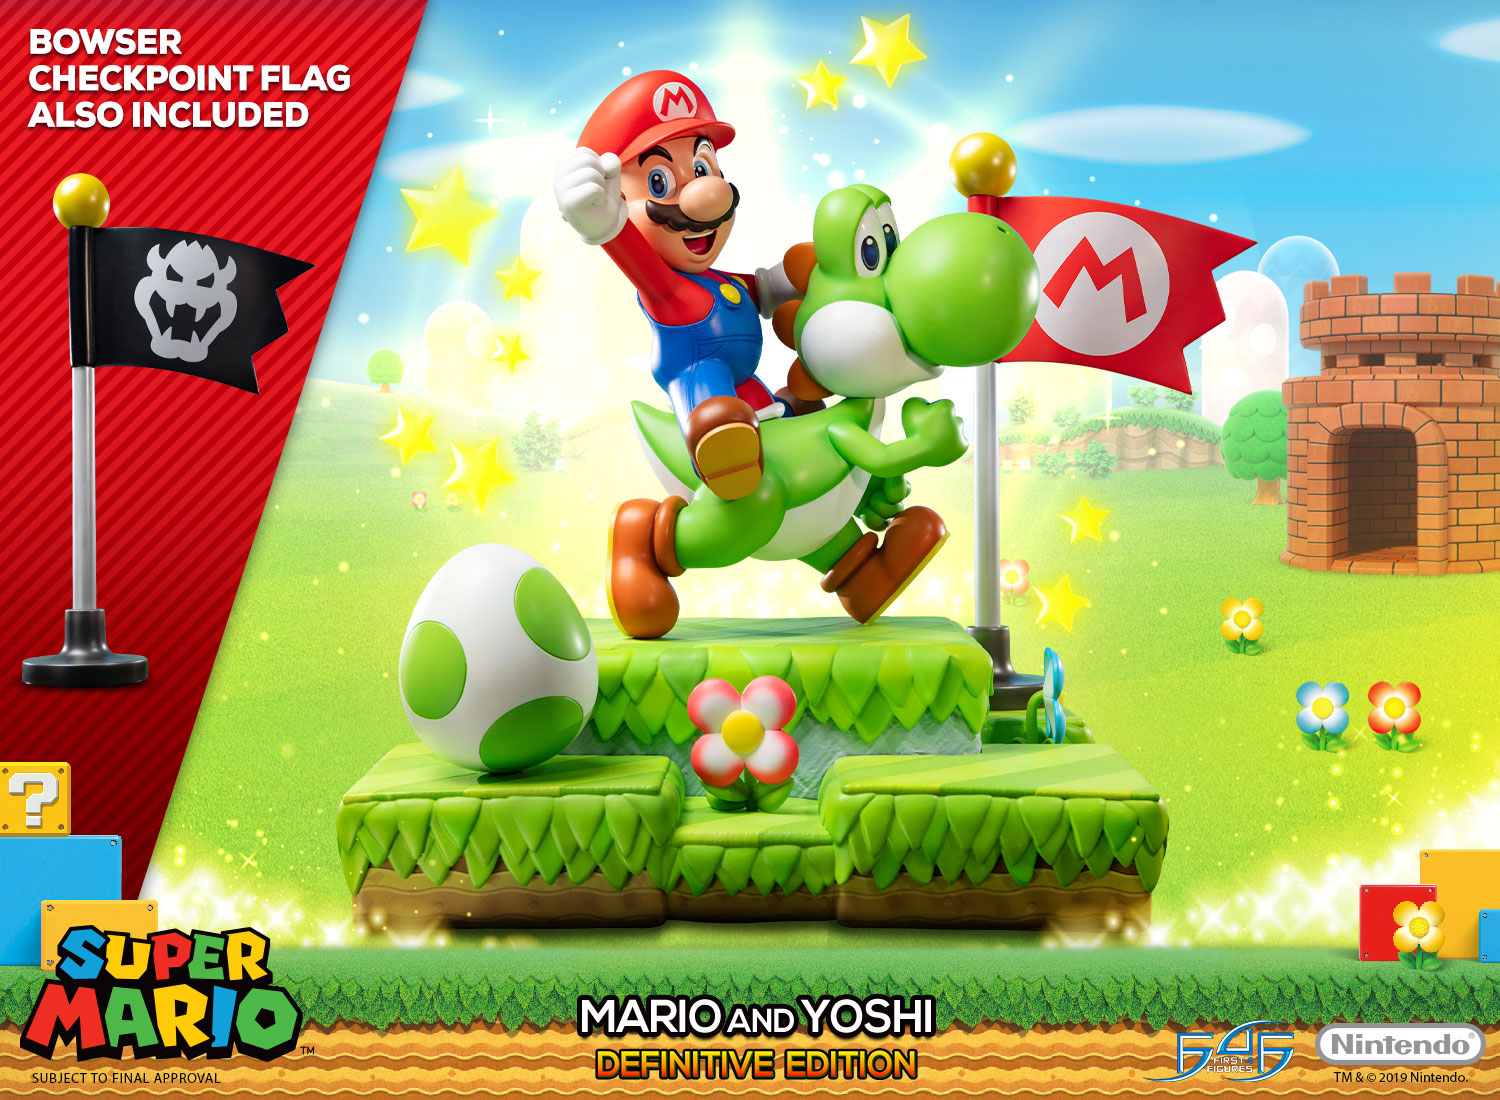 Mario and Yoshi (Definitive Edition)